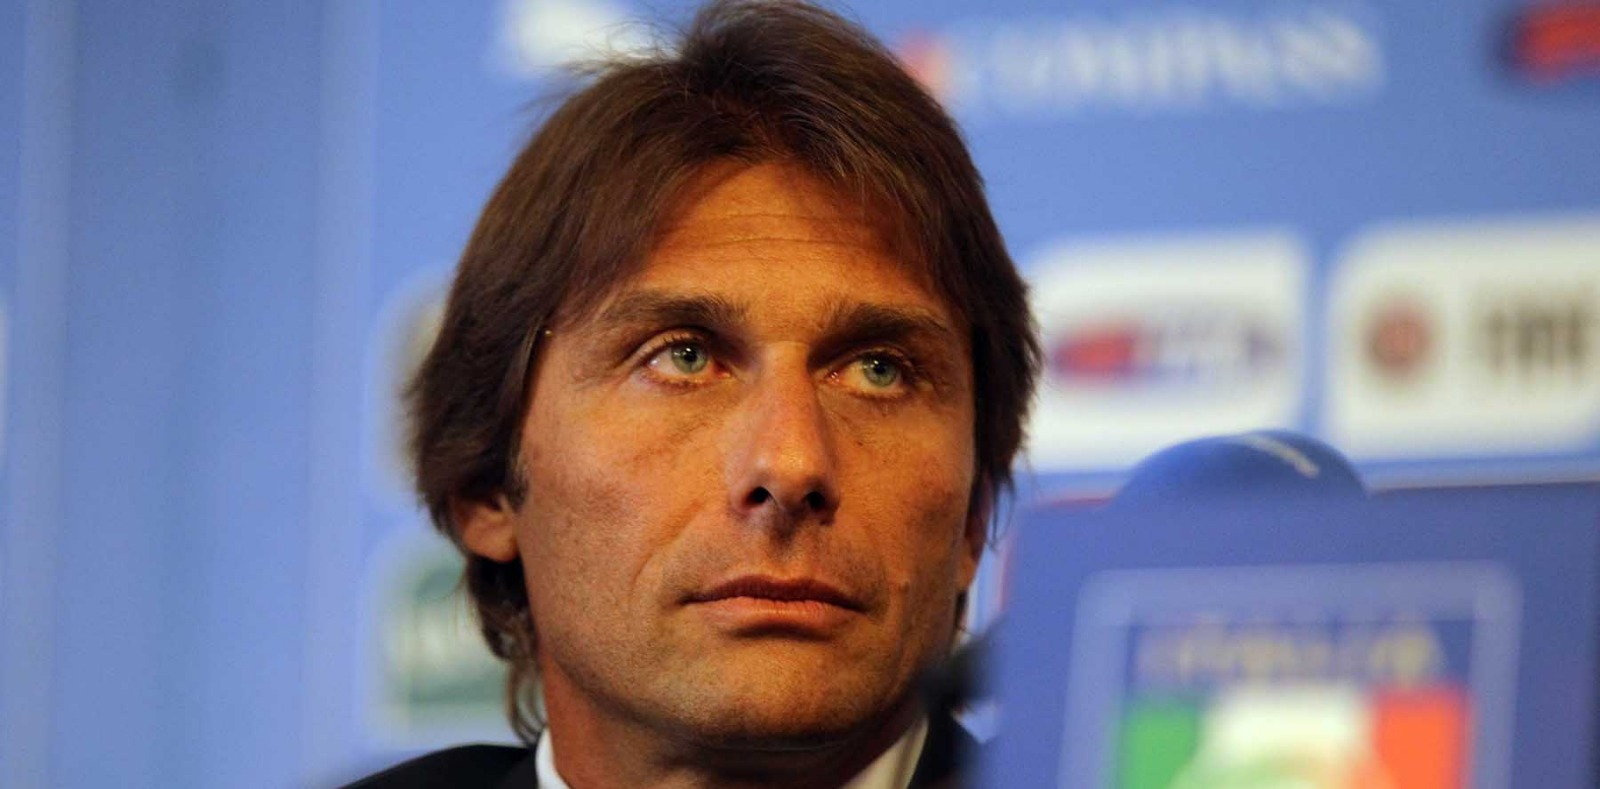 Antonio Conte Hair: How The Italian Player Transformed Appearance